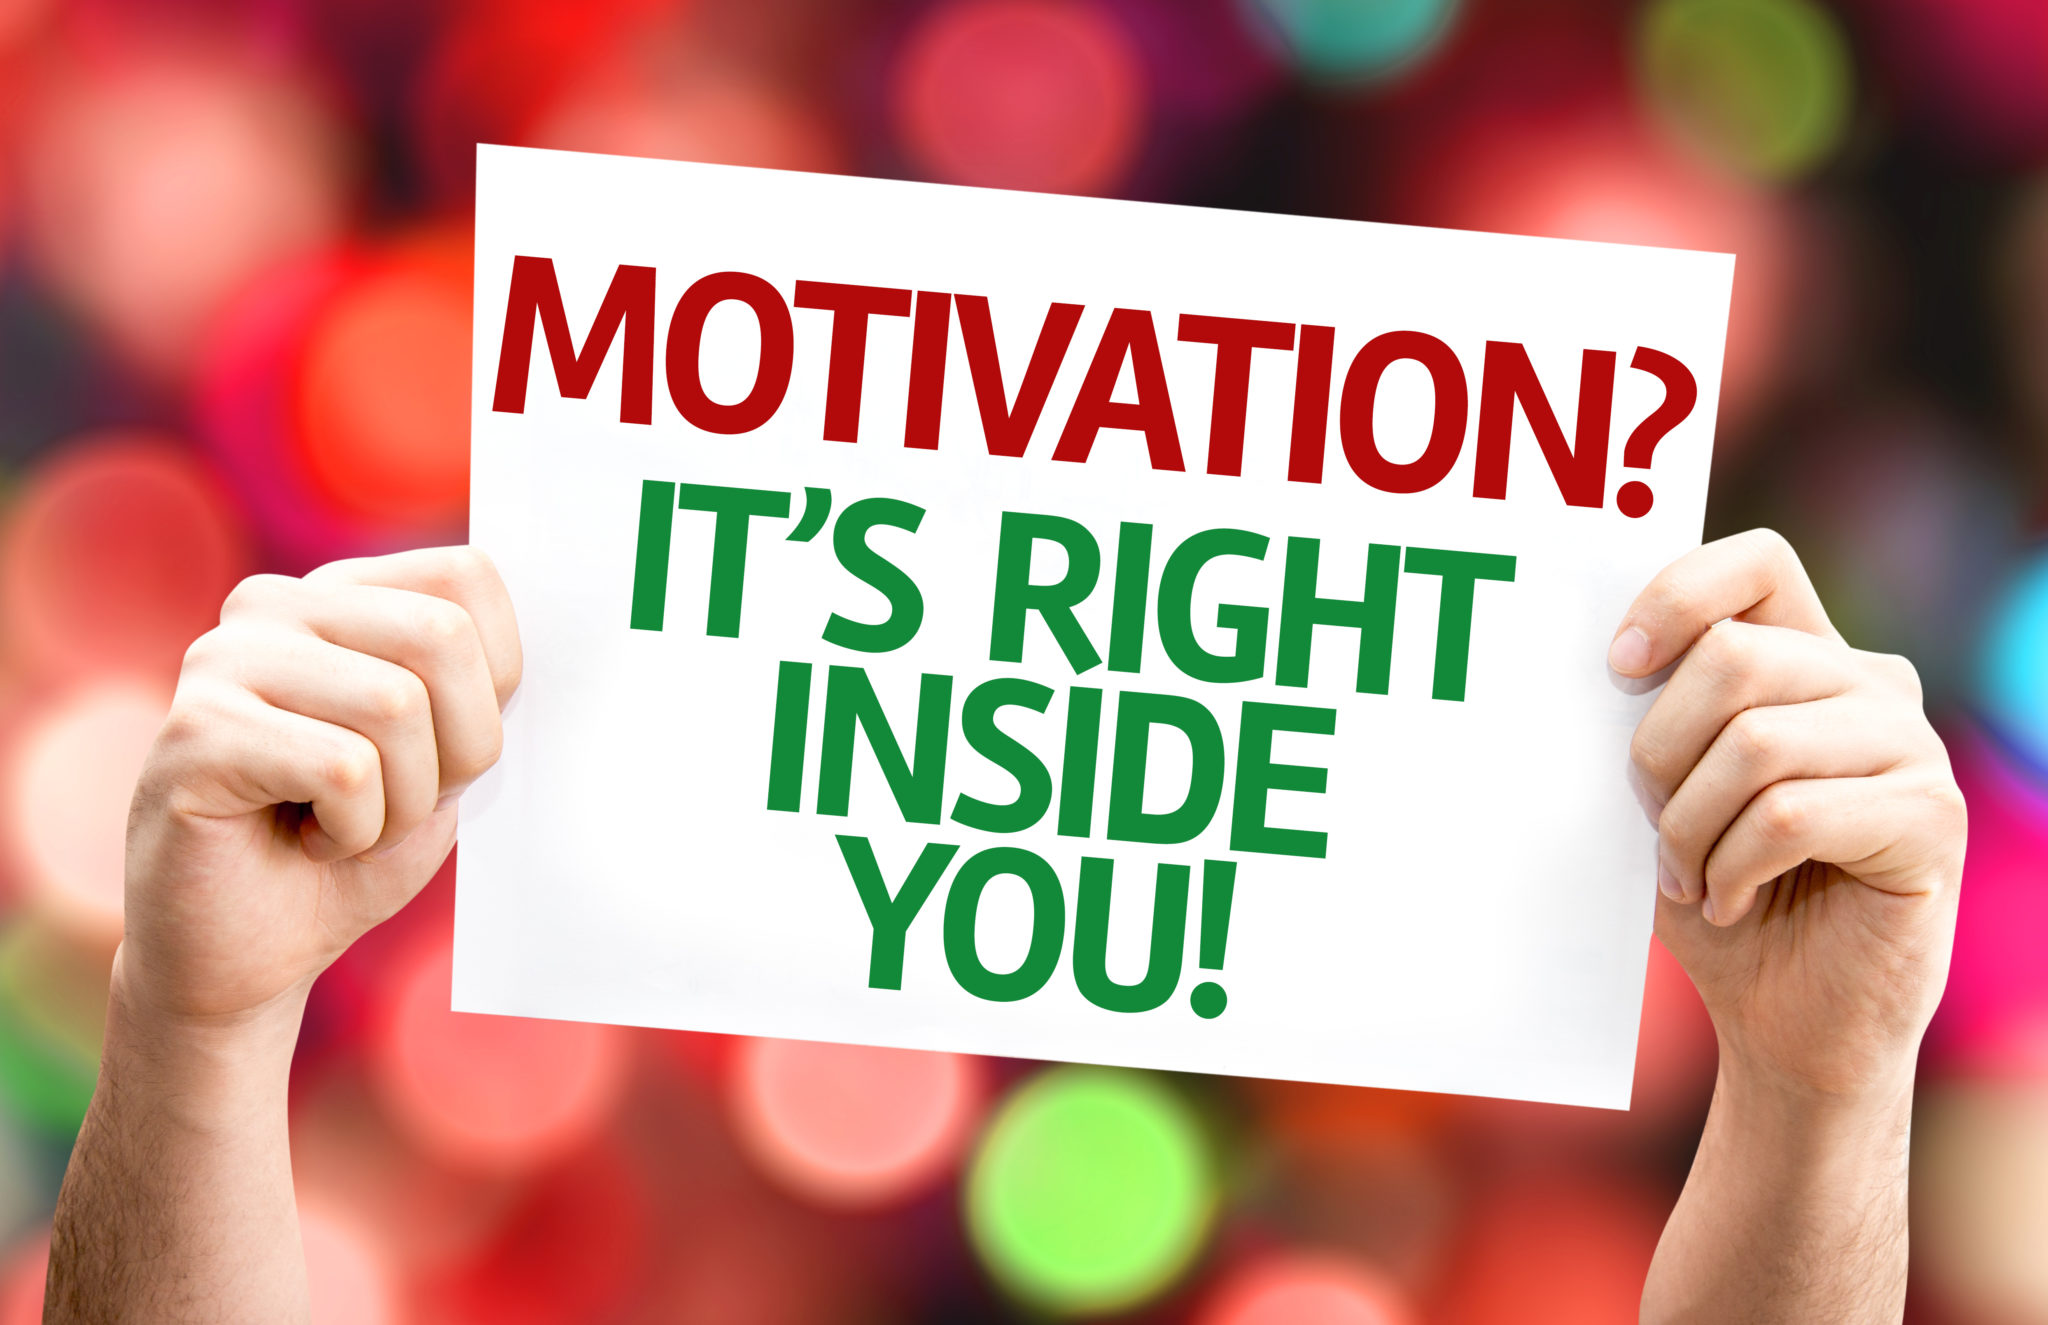 What's Your Motivation? Life Is All About What You Love